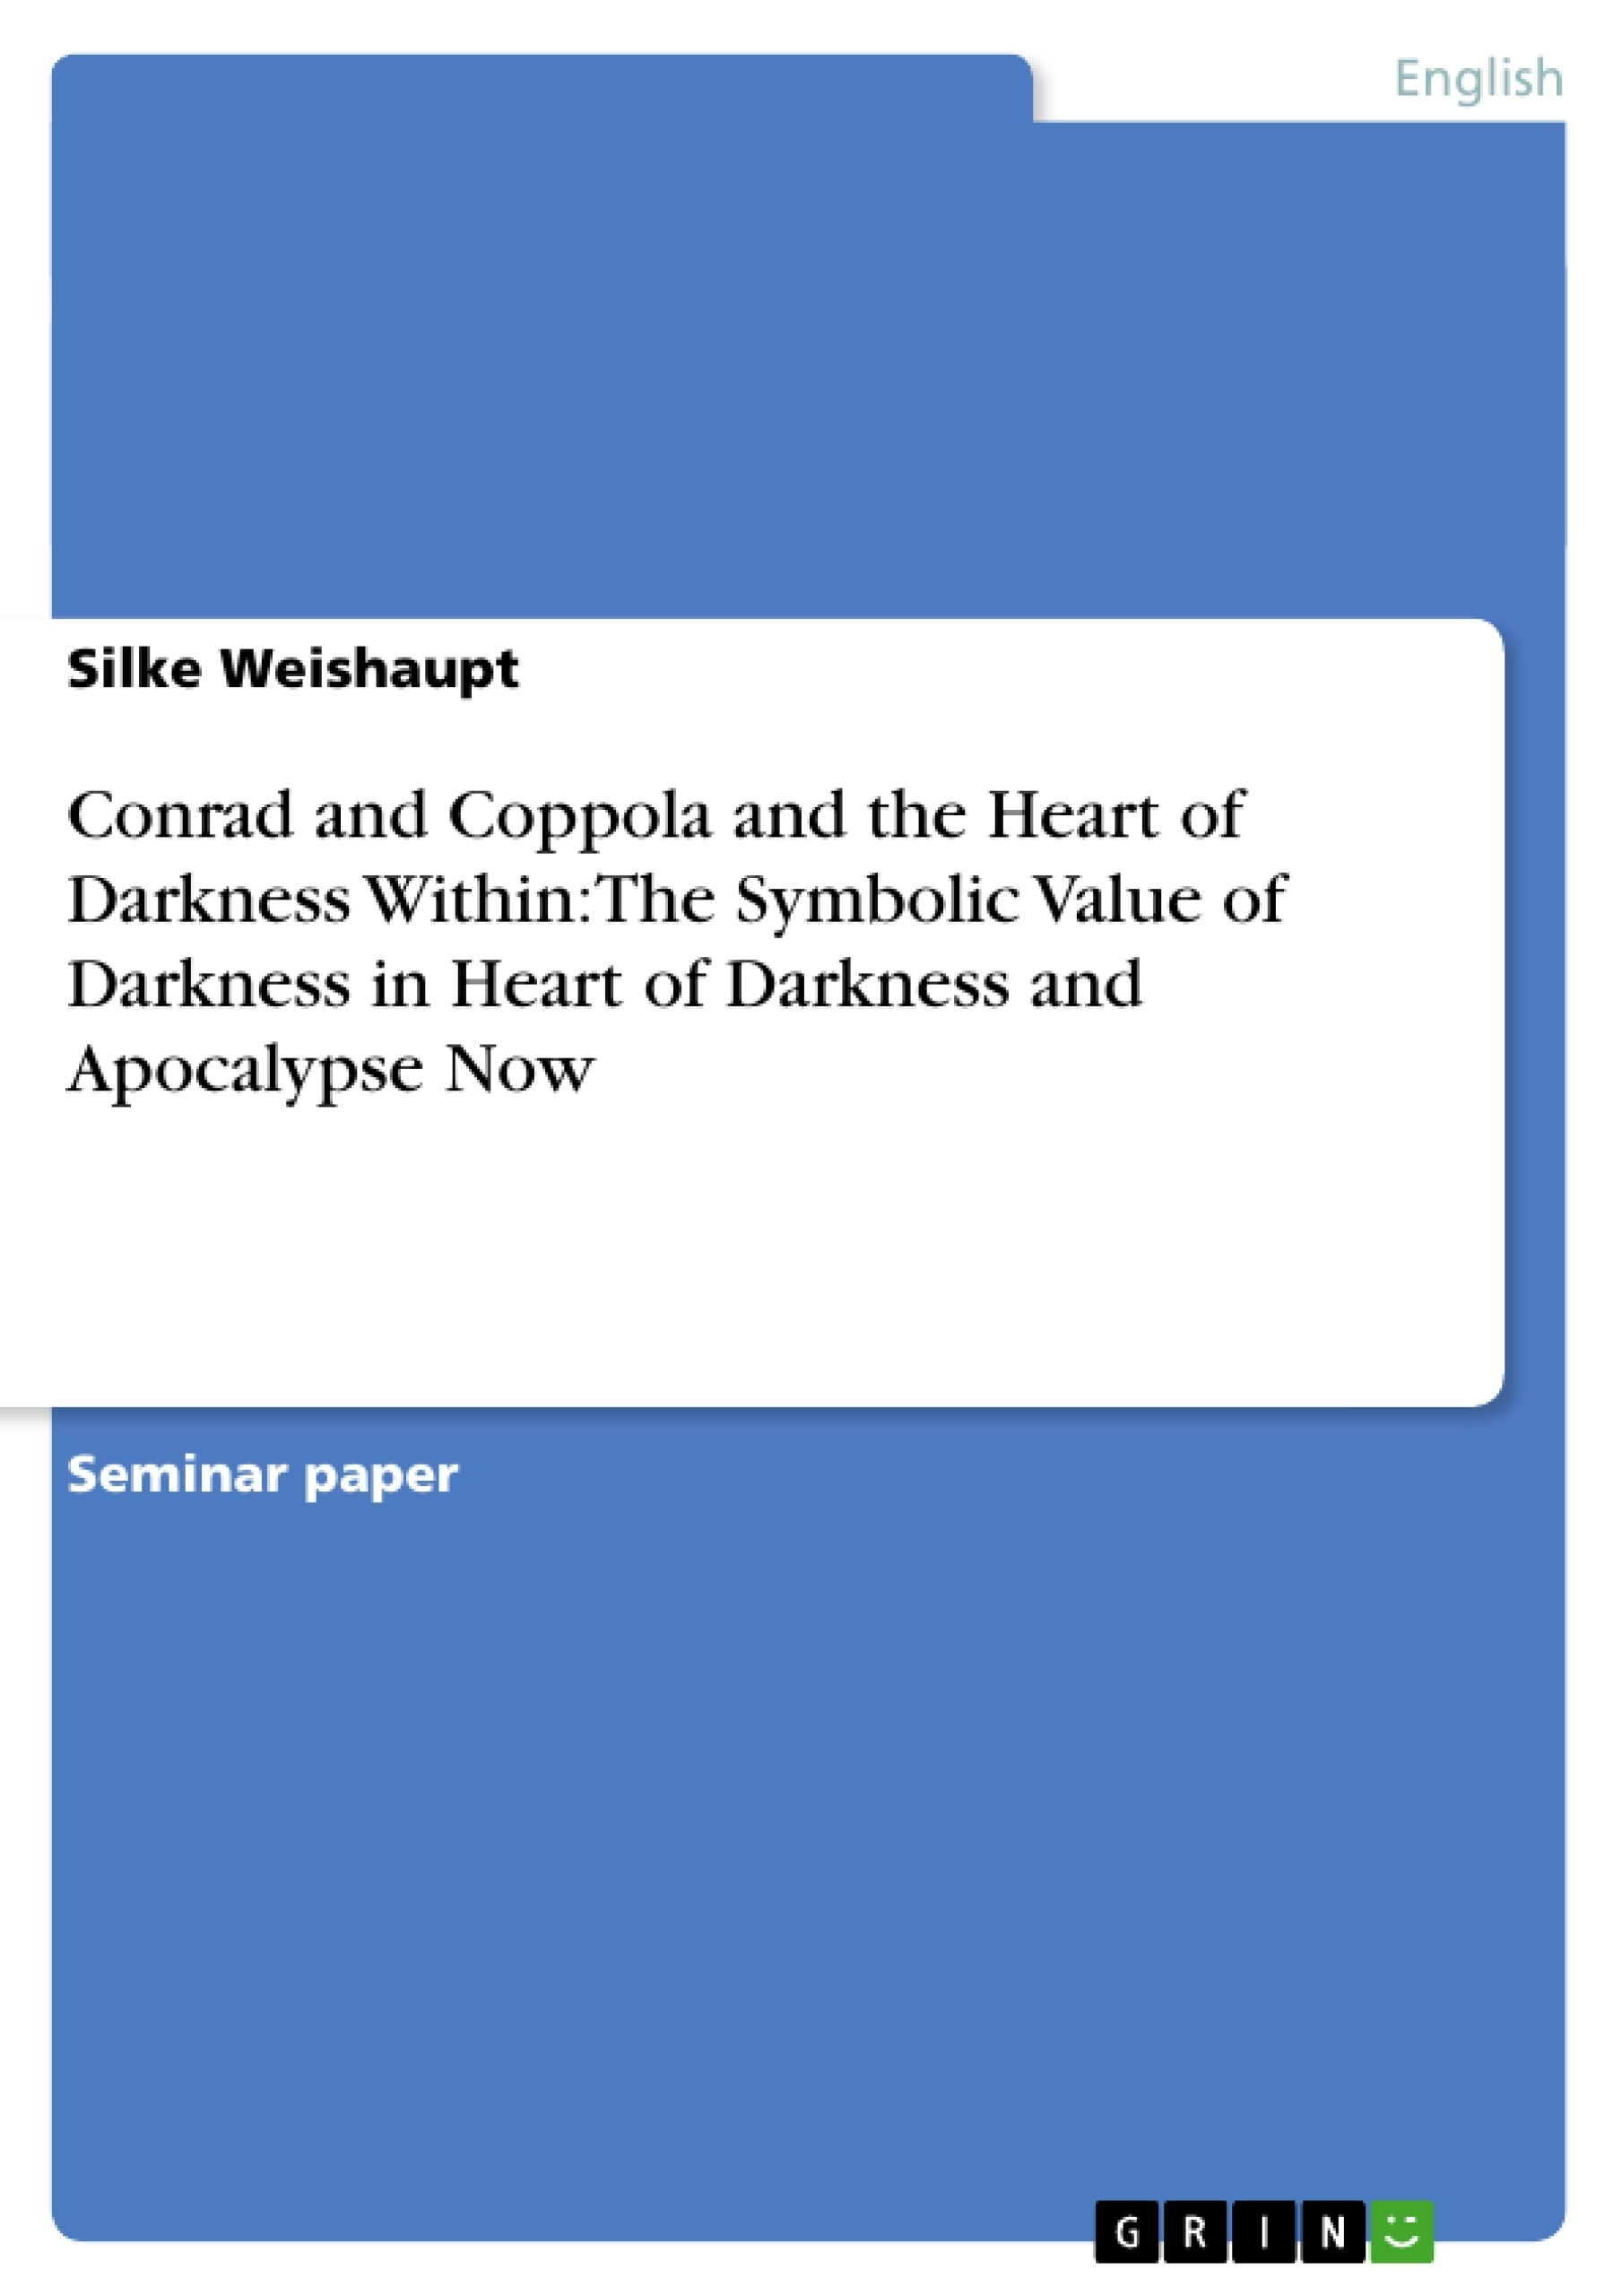 apocalypse now essay thesis Read comparing heart of darkness and apocalypse now free essay and over 88,000 other research documents comparing heart of darkness and apocalypse now comparing.